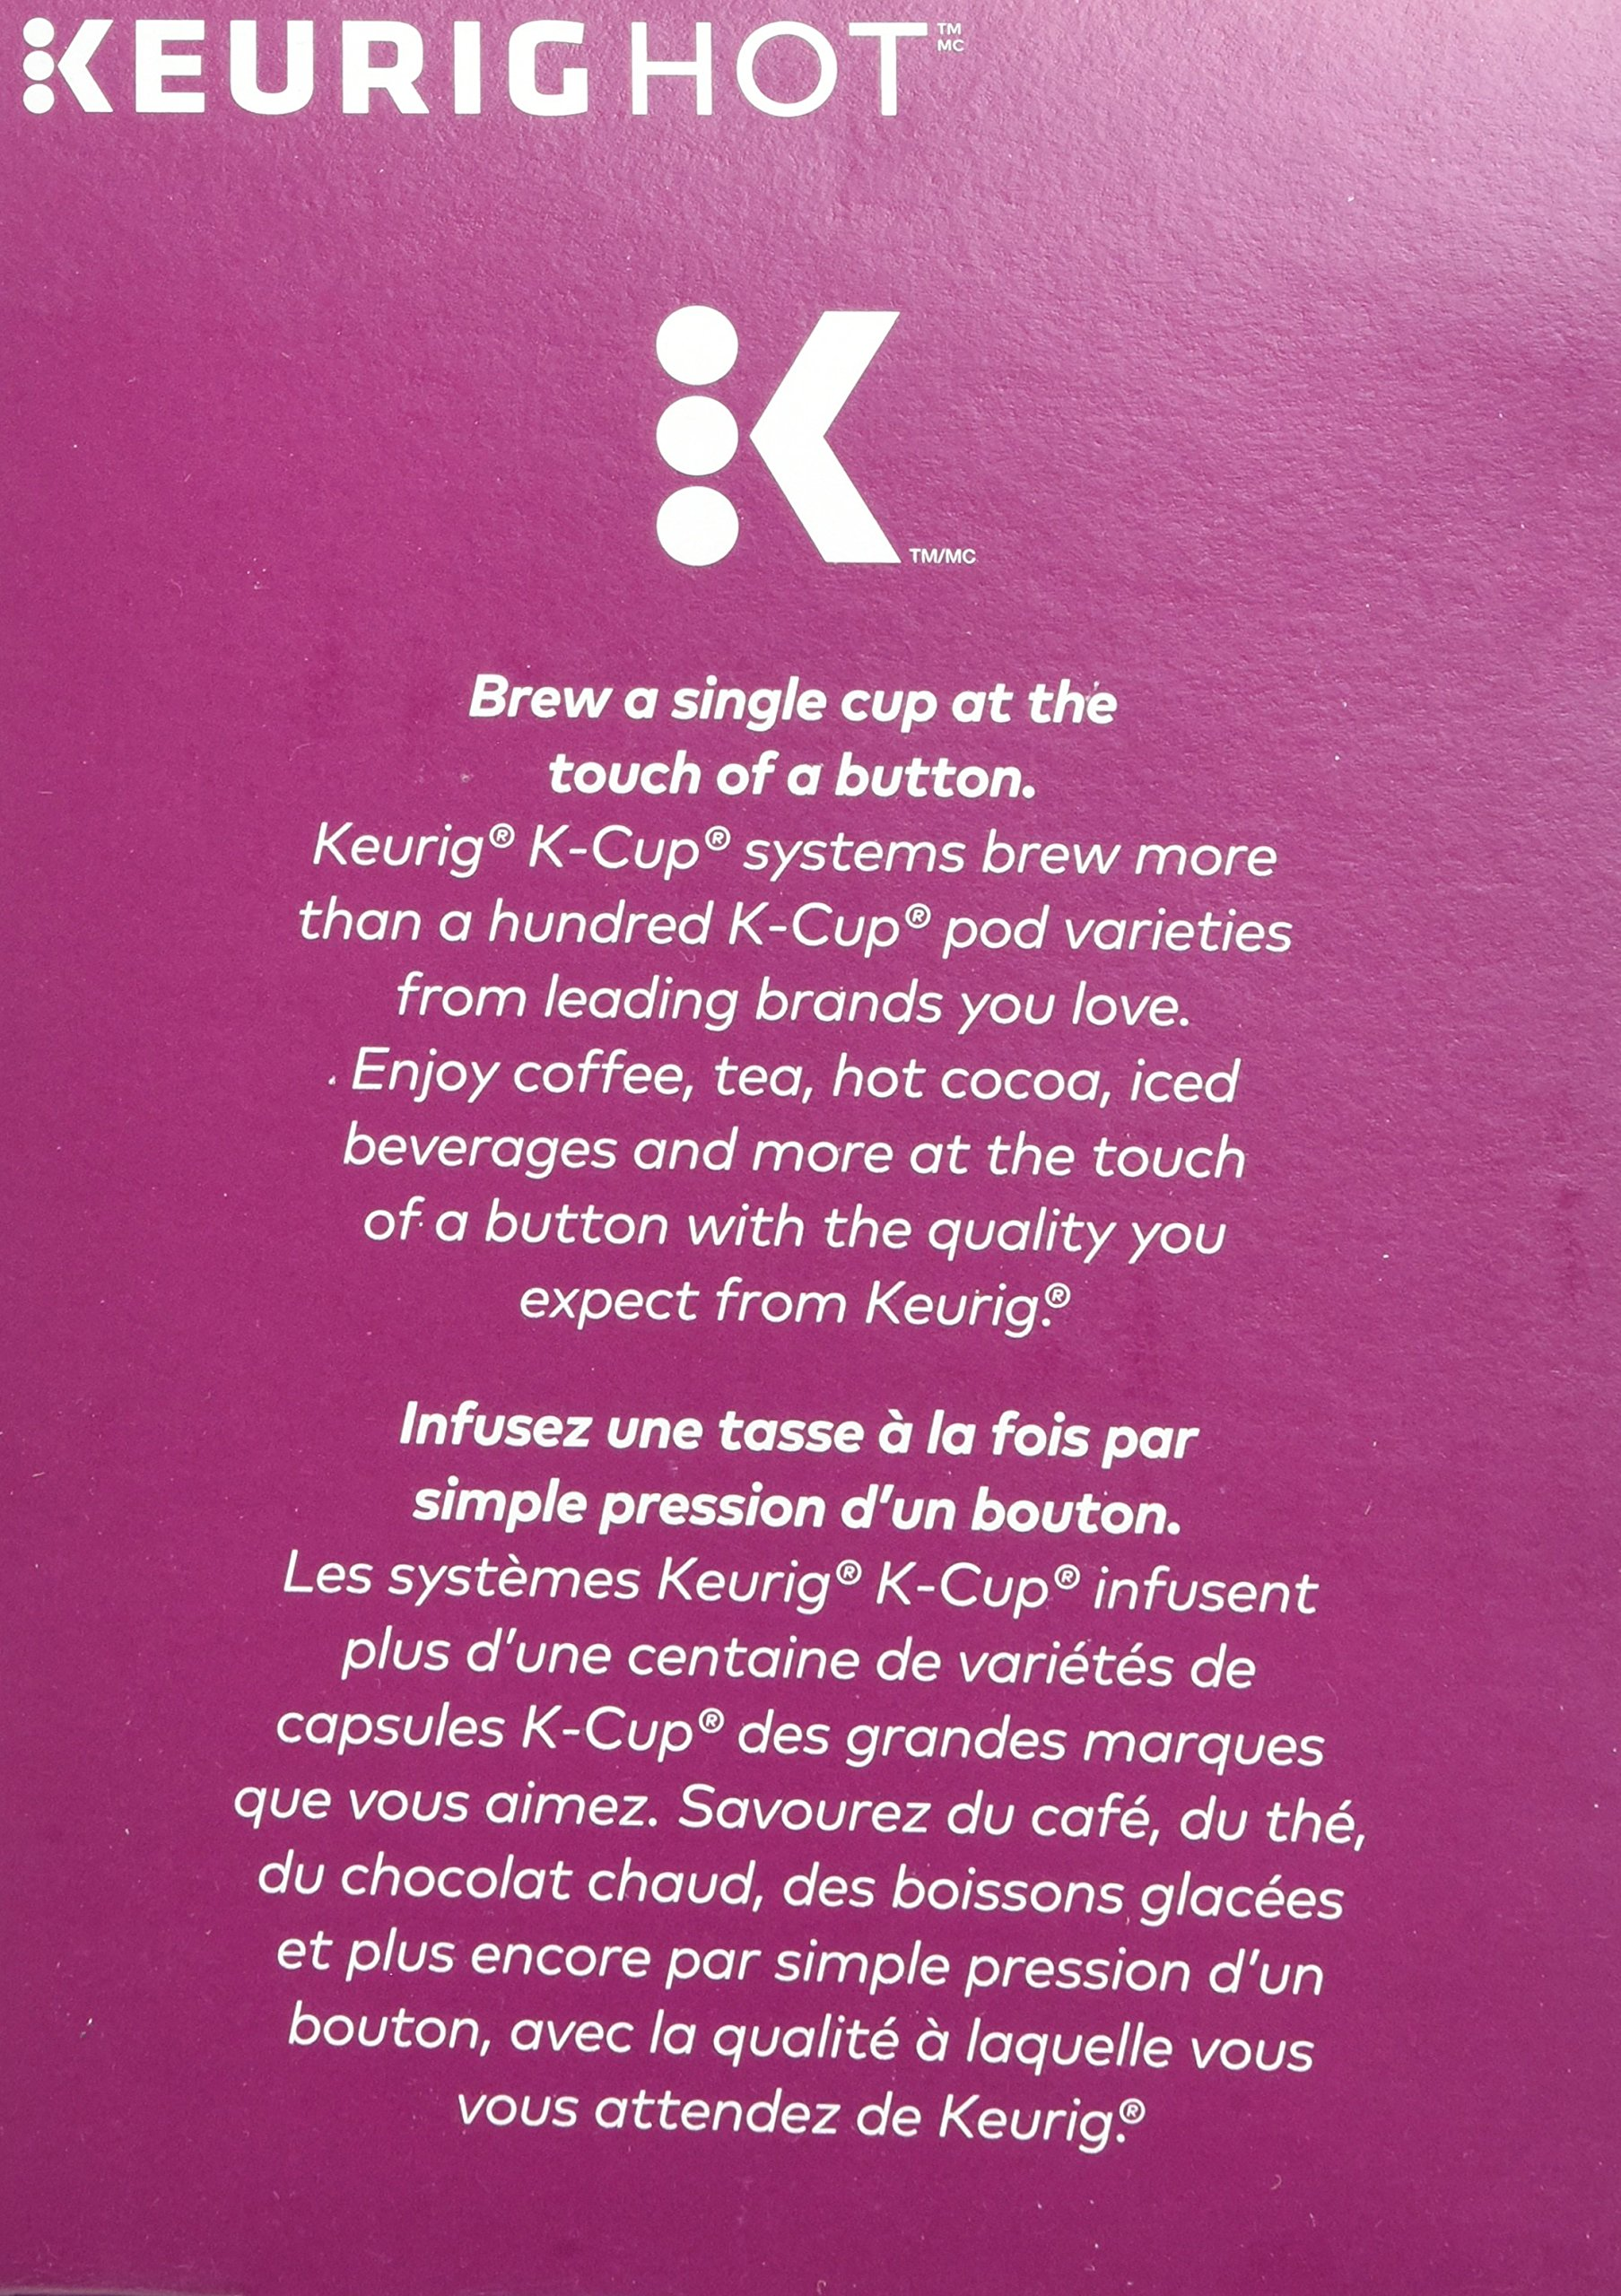 Starbucks Caffe Verona Dark, K-Cup for Keurig Brewers, 24 Count by Starbucks (Image #7)